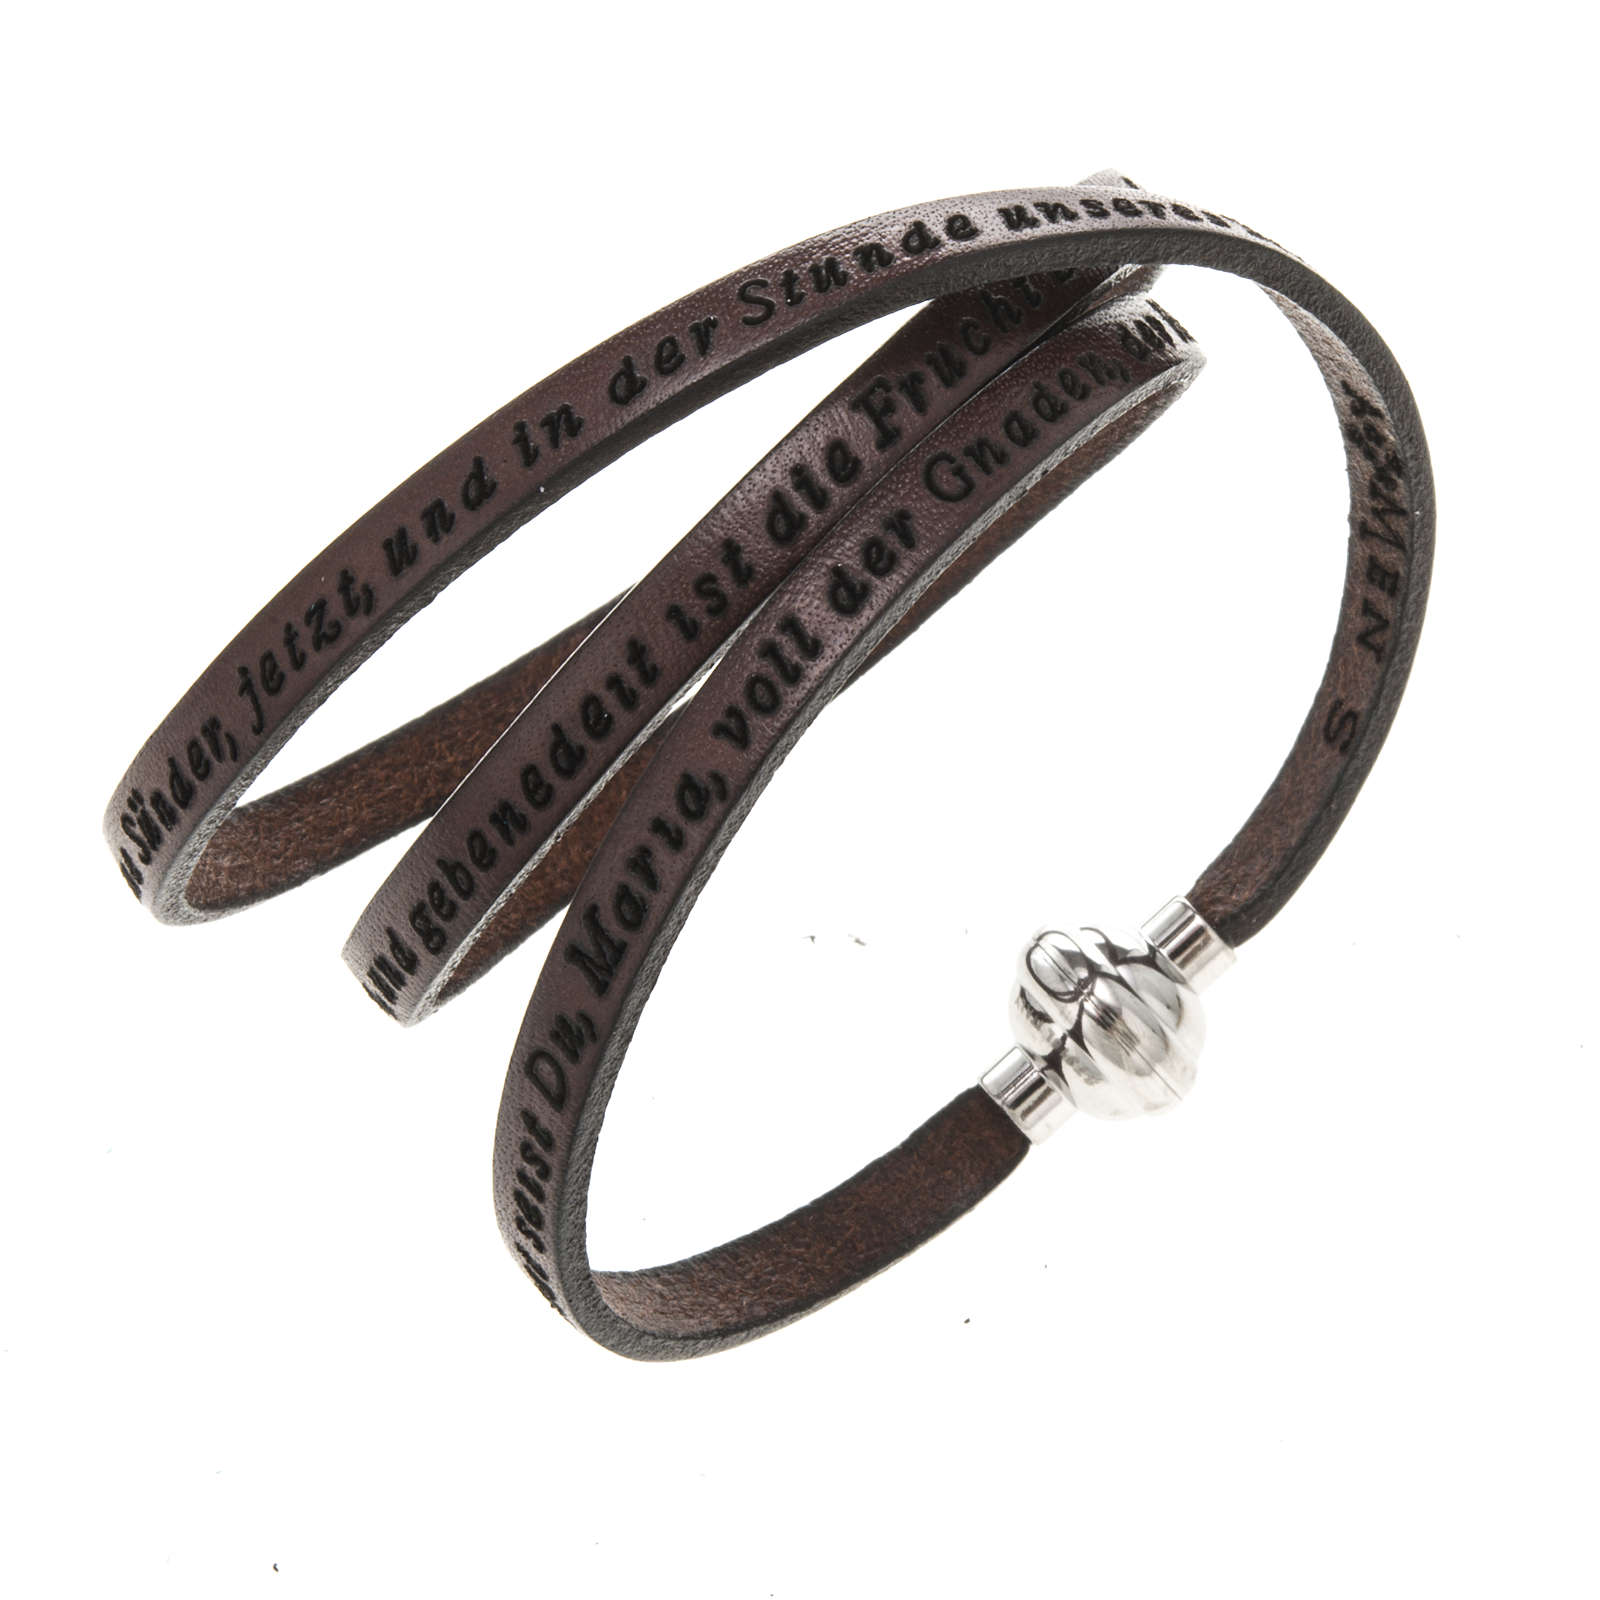 Amen Bracelet in brown leather Hail Mary GER 4